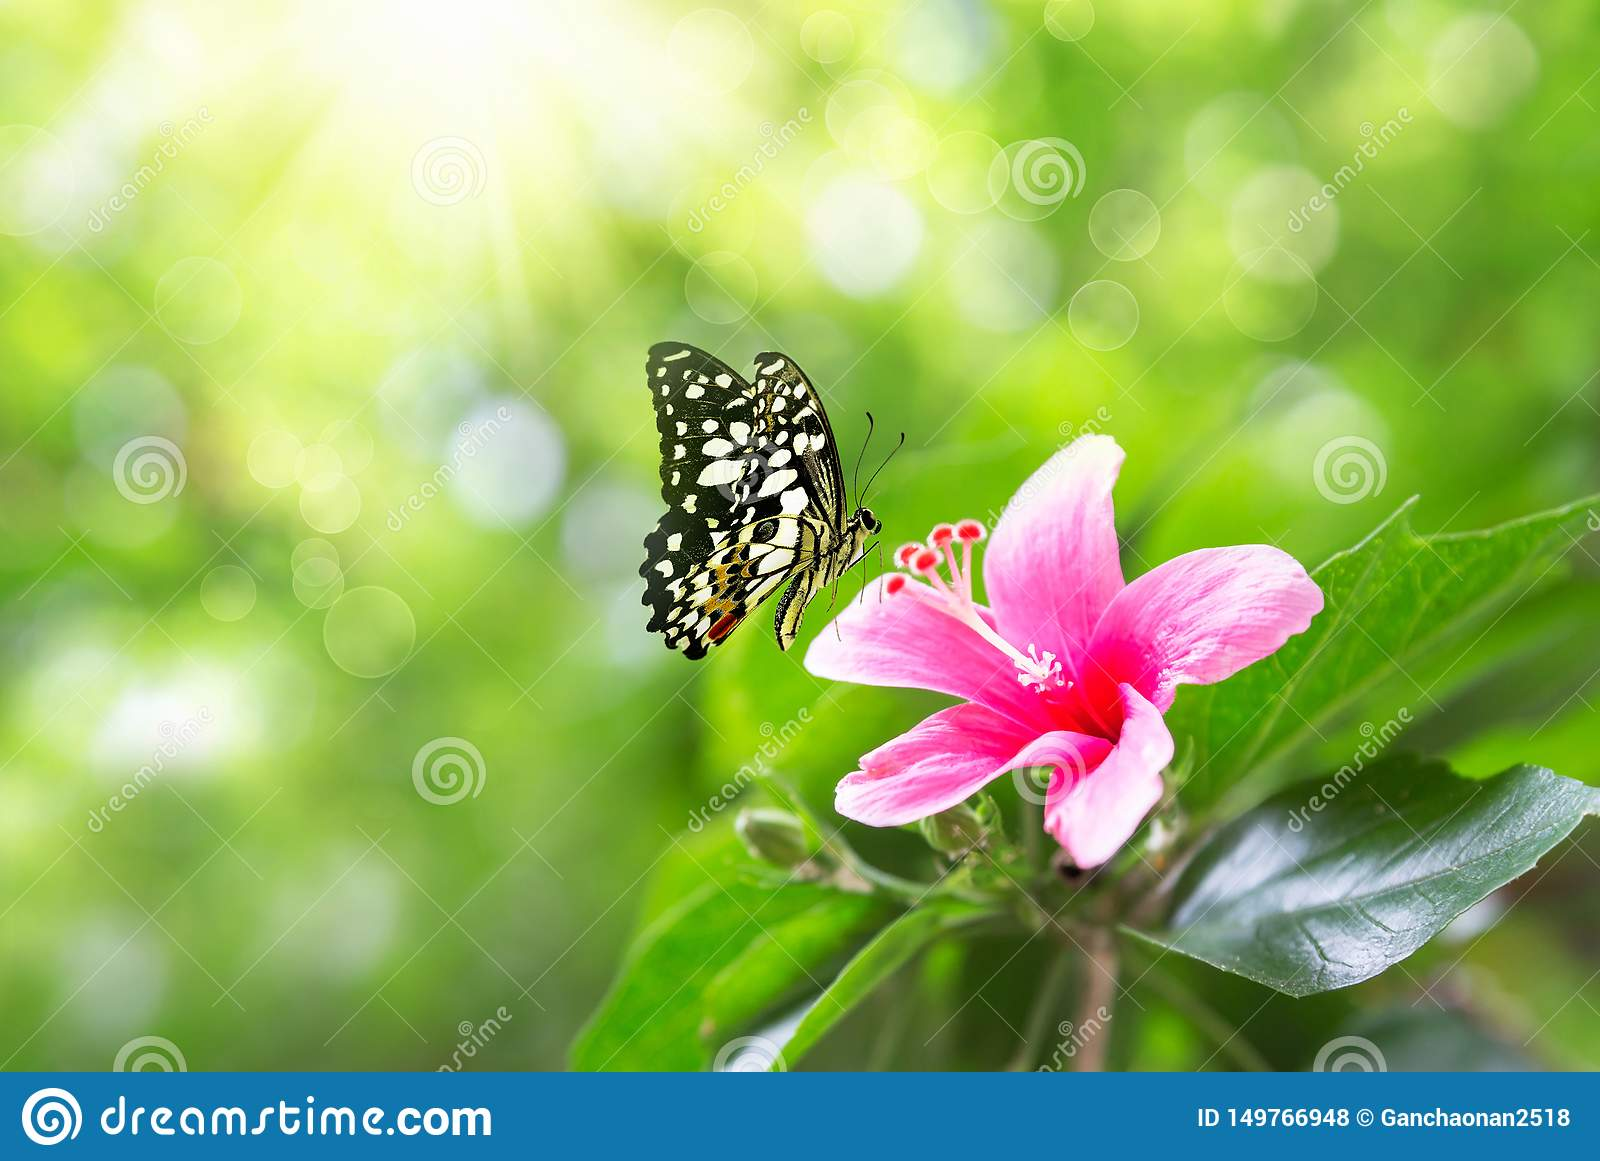 Beautiful pink flower anemones fresh spring morning on nature and fluttering butterfly on soft green background, macro